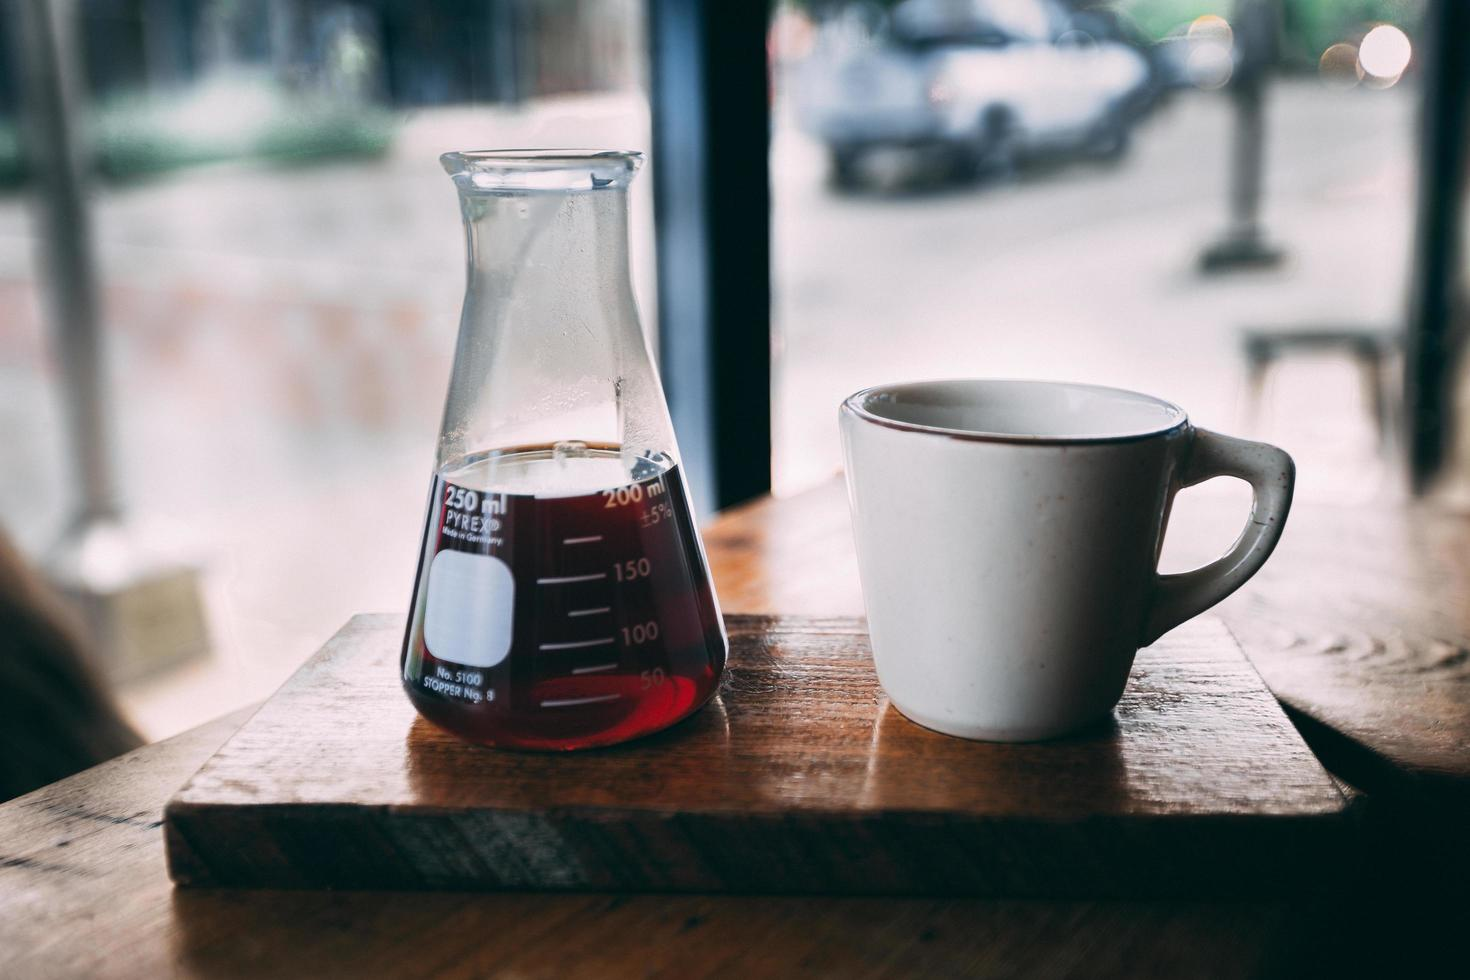 Erlenmeyer flask and white mug on brown wooden table photo